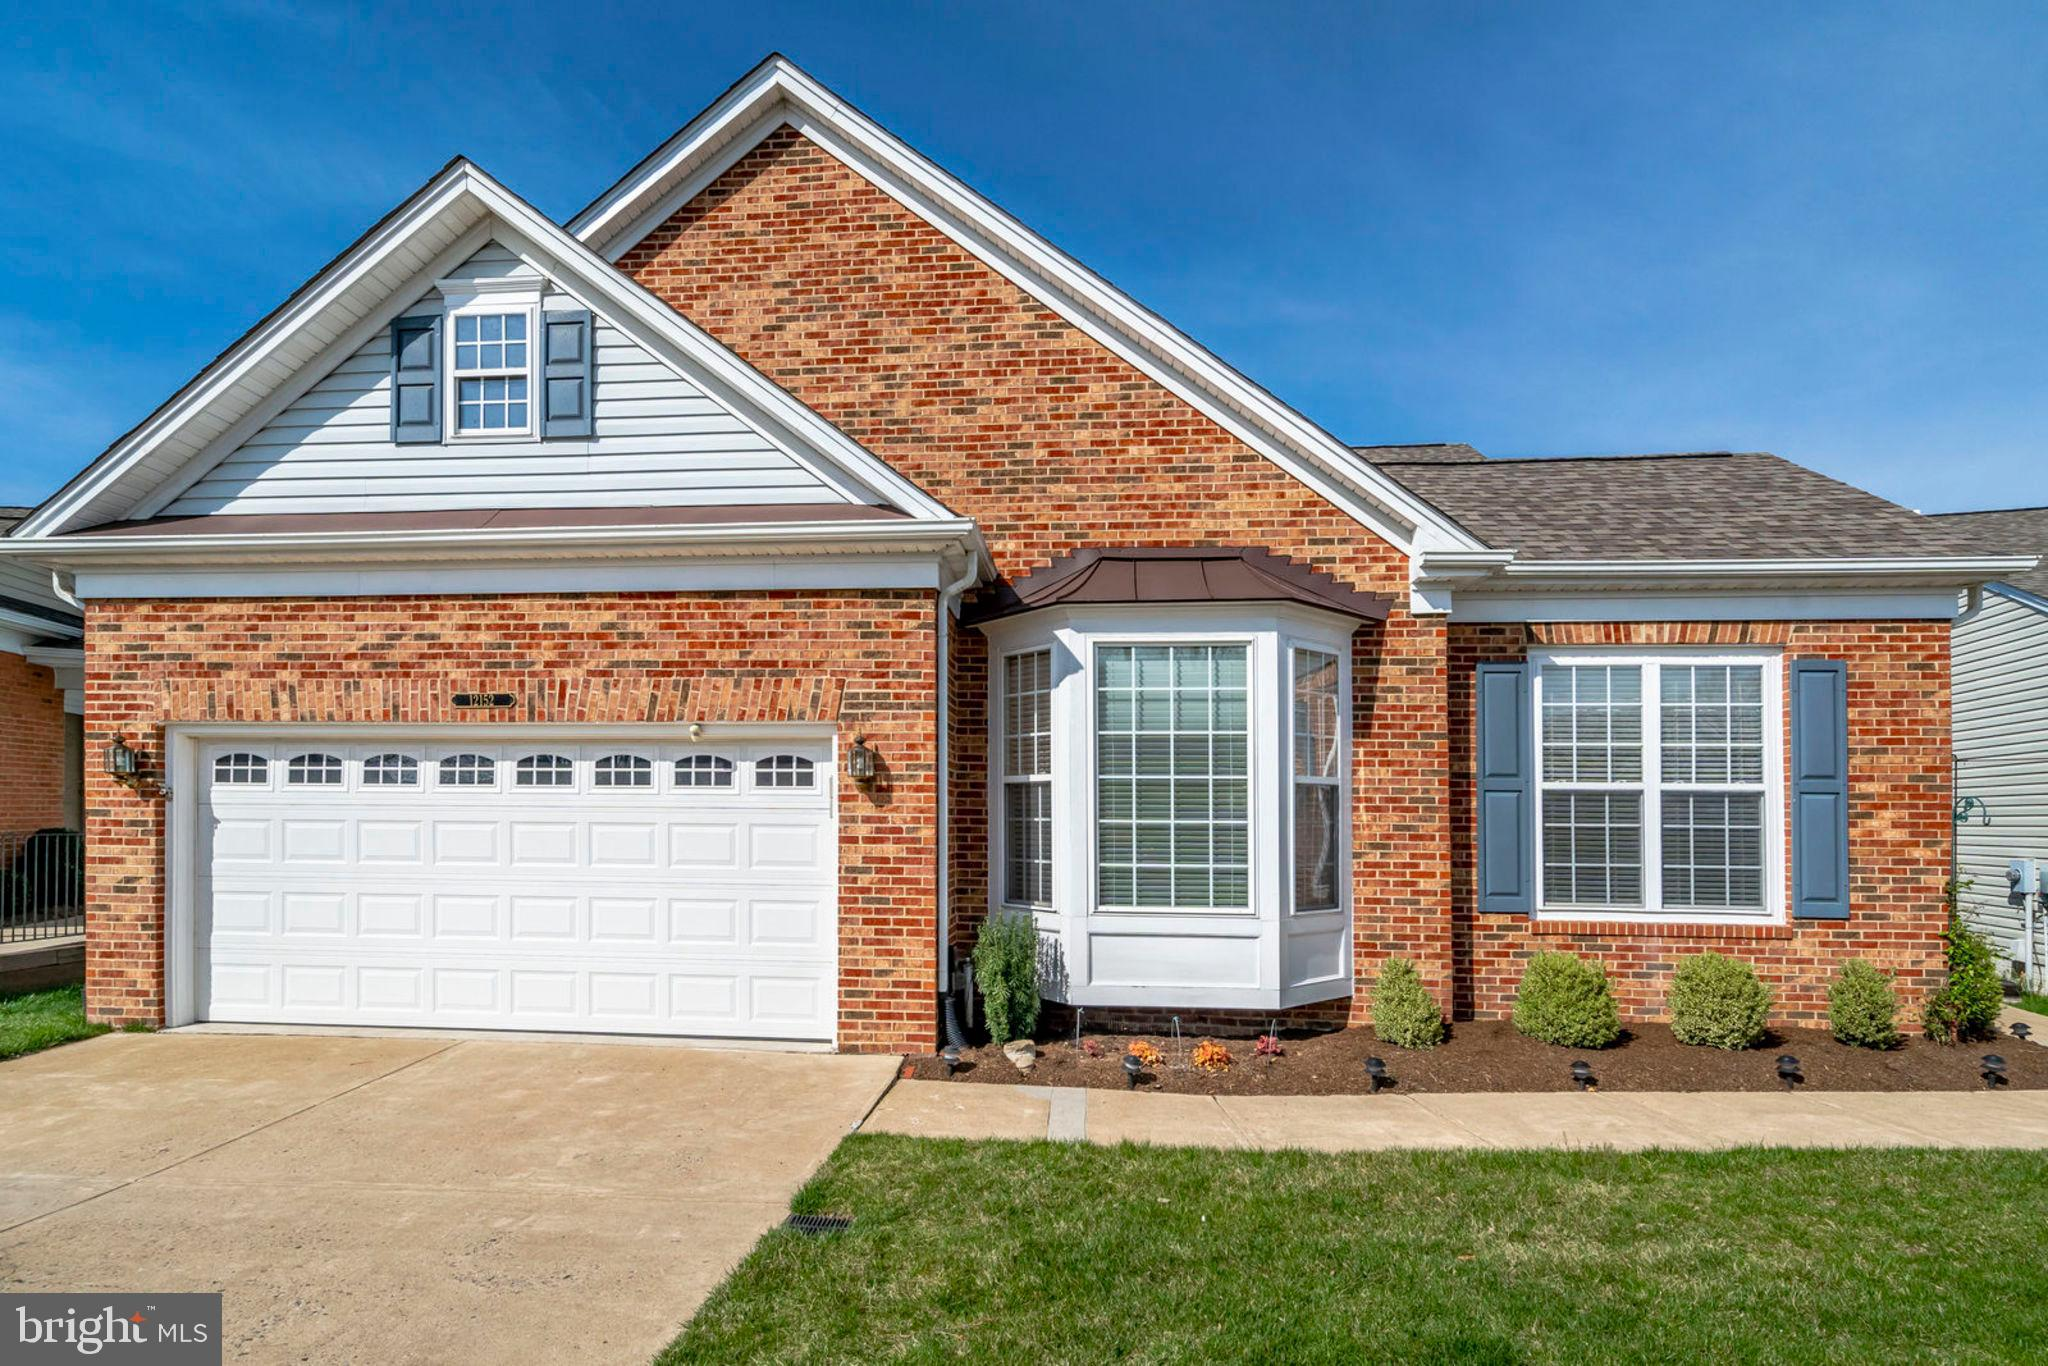 Immaculately kept brick front colonial in wonderful active adult community of River Ridge!  Three bedrooms and three full baths!  Study with french doors!  Upgraded hardwoods with no thresholds in living, dining and rec room.  Fireplace!  New carpet in study and all bedrooms!  Tray ceiling in master bedroom!  Gorgeous moldings and wainscoting,  Remote blinds in family room and master. Loads of cabinets and counter space in kitchen.  Corian counters!  Breakfast counter!  Enormous fully finished, walk out lower level features bedroom, full bath, large storage room and workshop!  Just in case that's not enough, there's a screened in porch, deck, and brick patio!  Just perfect